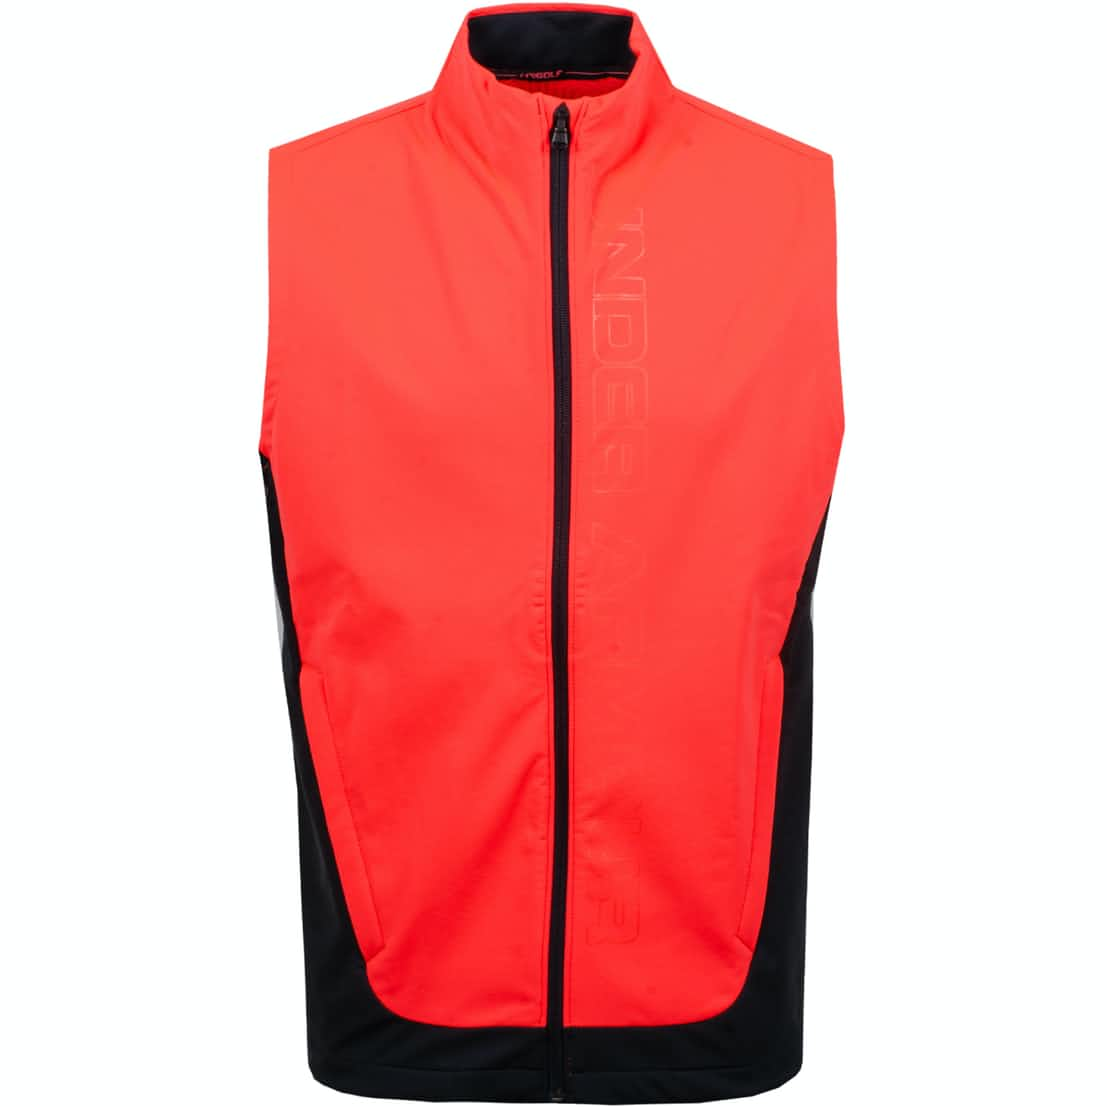 Storm Vest Beta Red - AW19